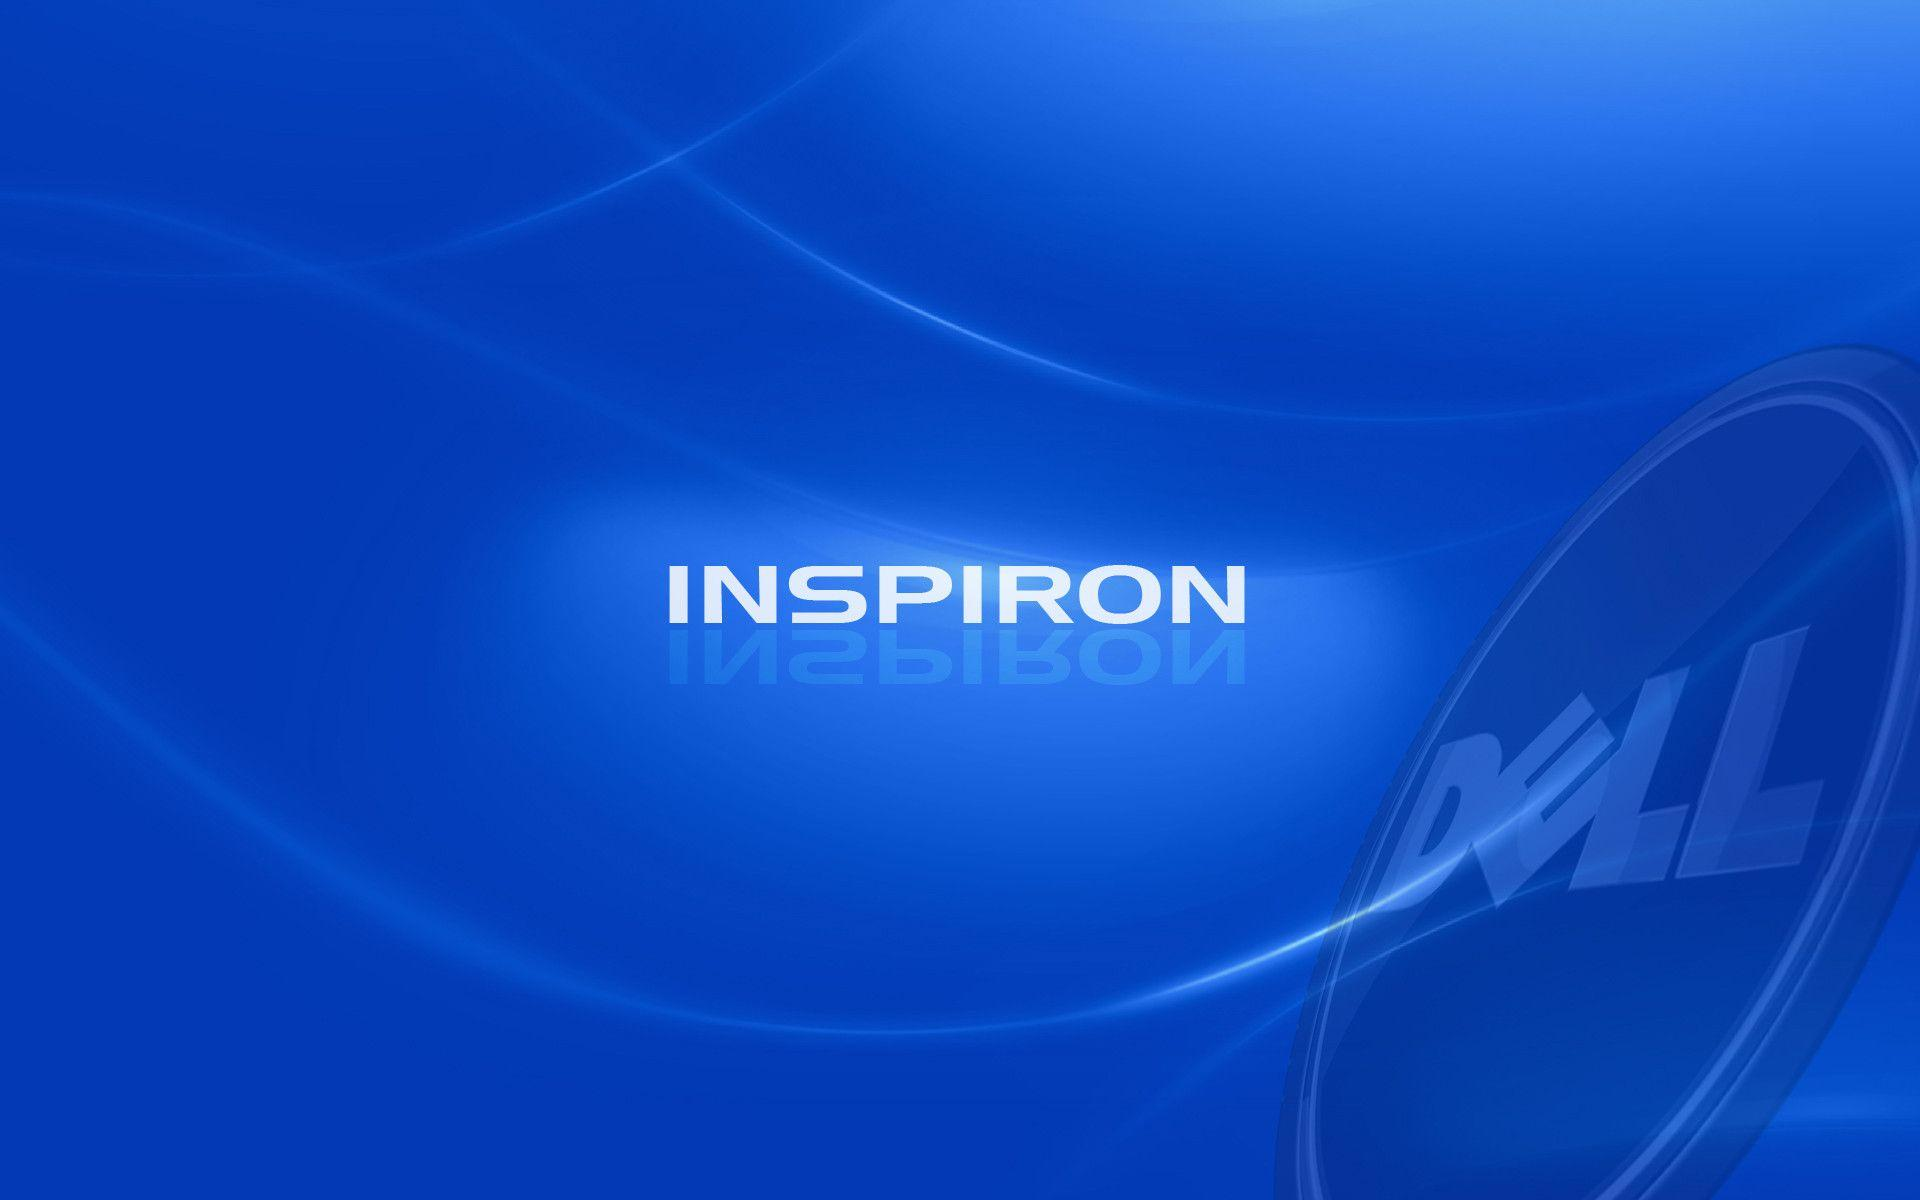 Dell Inspiron Wallpapers   Top Dell Inspiron Backgrounds 1920x1200